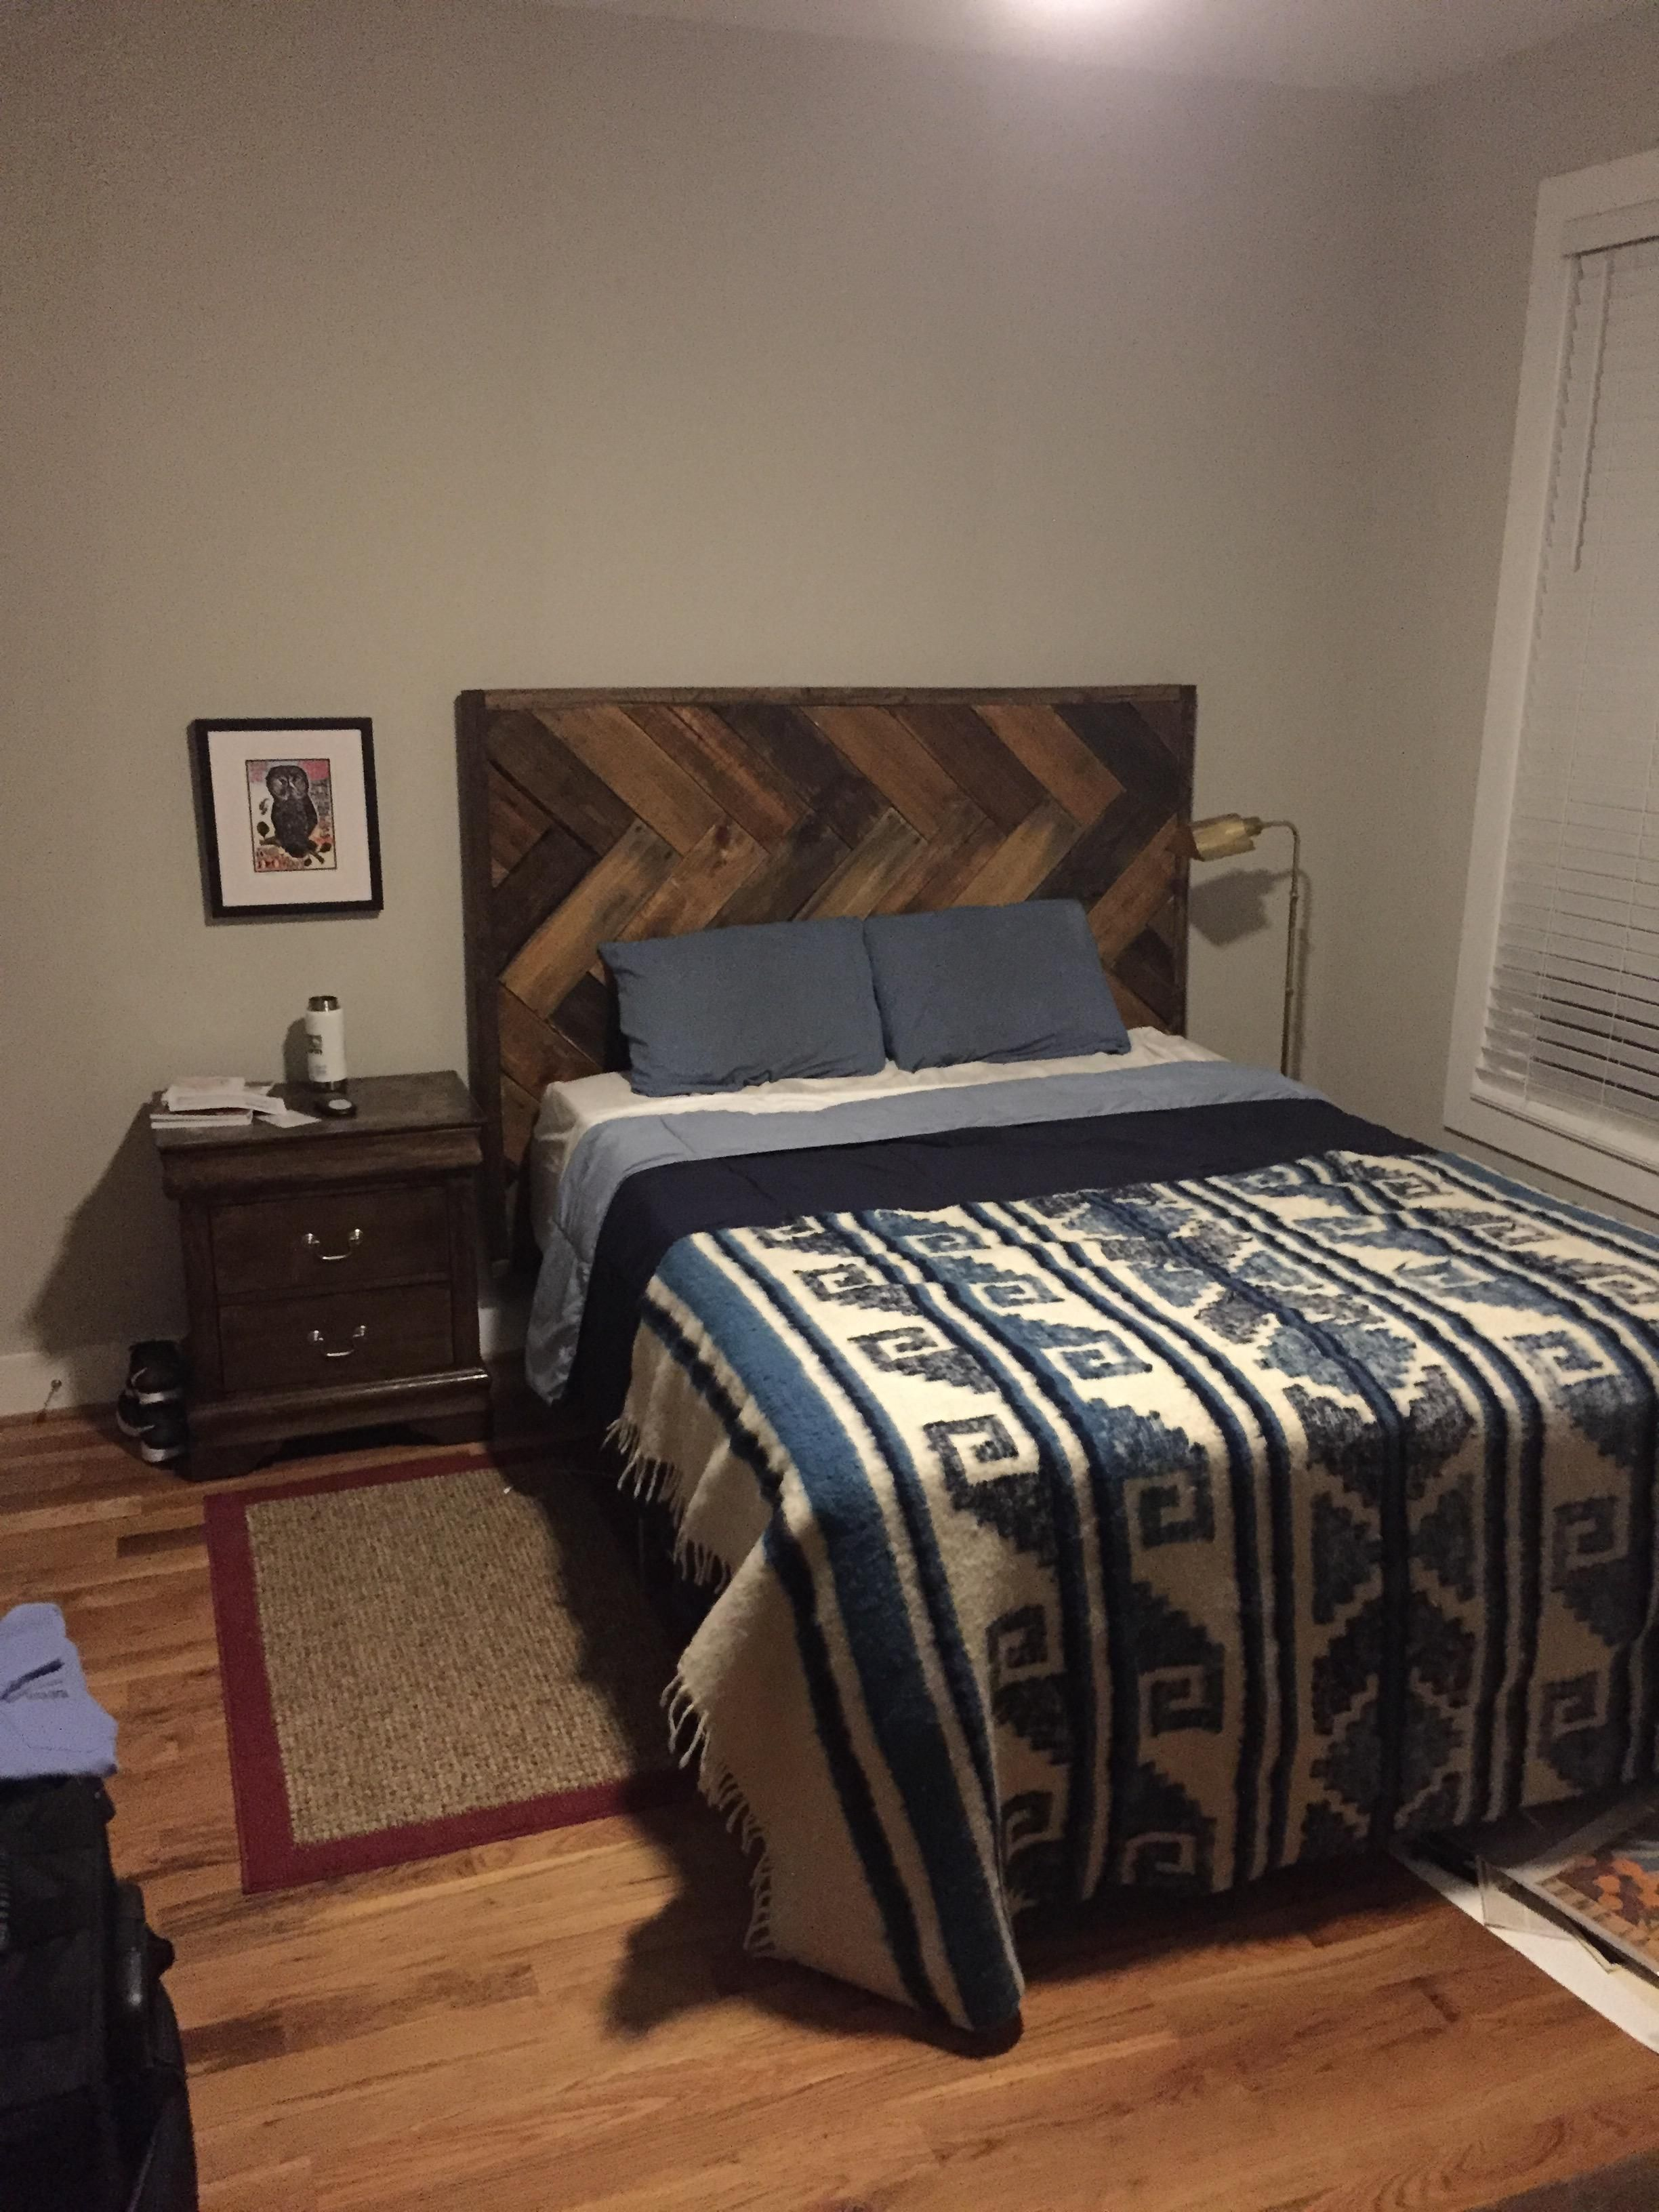 I made a headboard out of pallet wood for